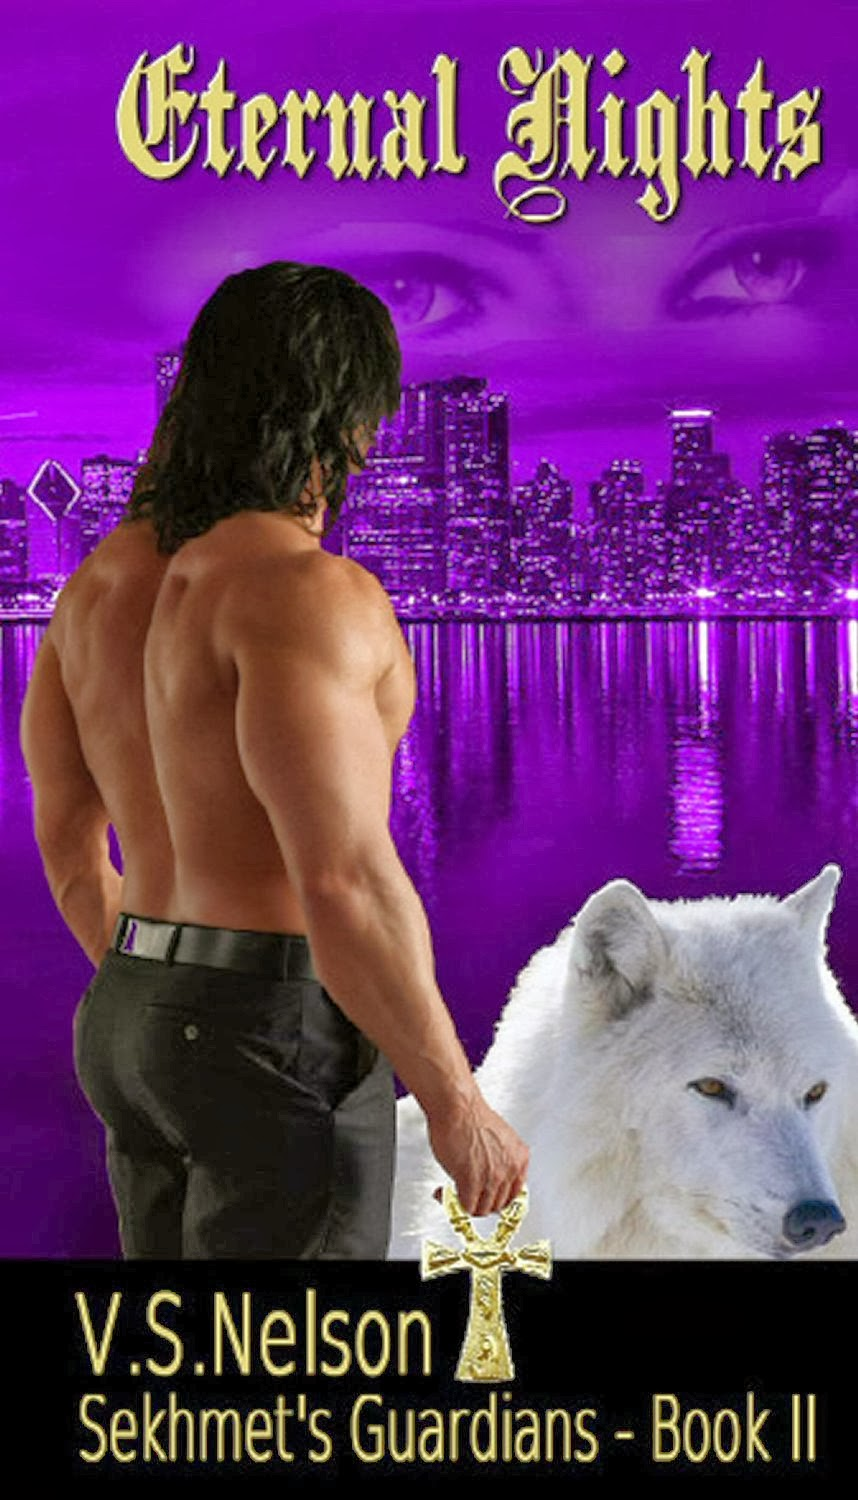 http://www.amazon.com/Eternal-Nights-Sekhmets-Guardians-Book-ebook/dp/B00CJOCKVM/ref=pd_sim_kstore_2